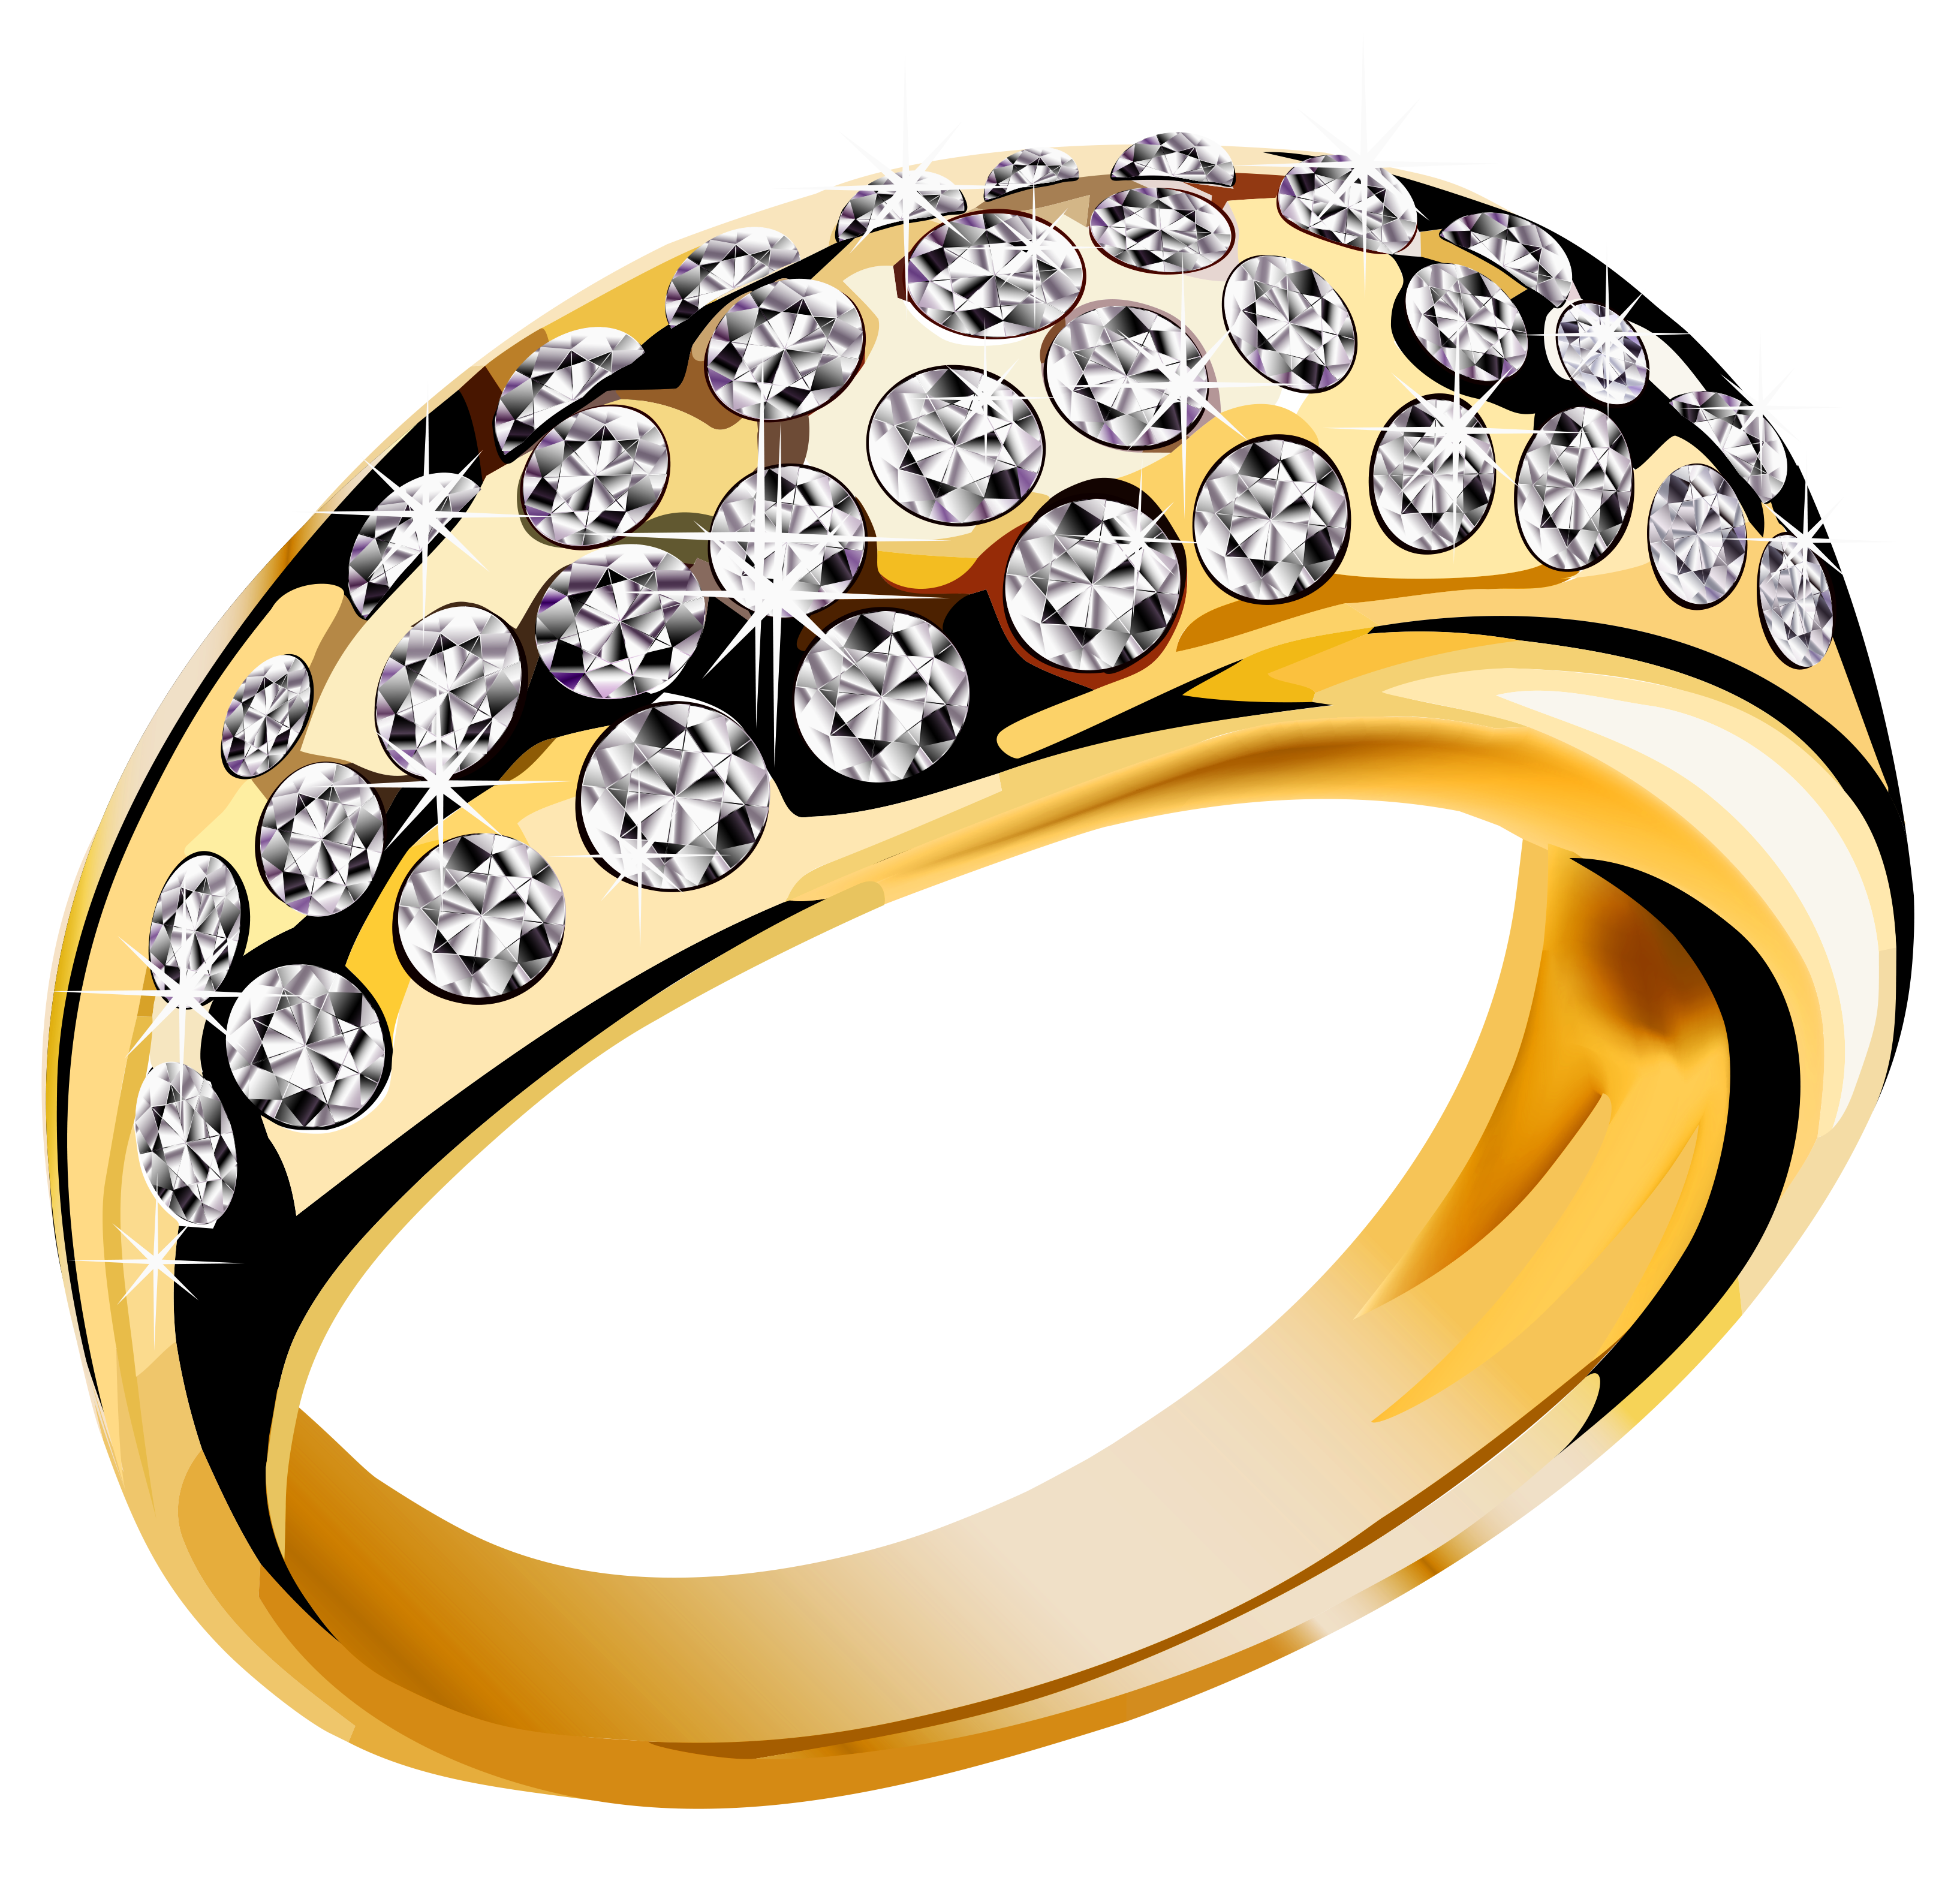 wedding rings clipart png clipground